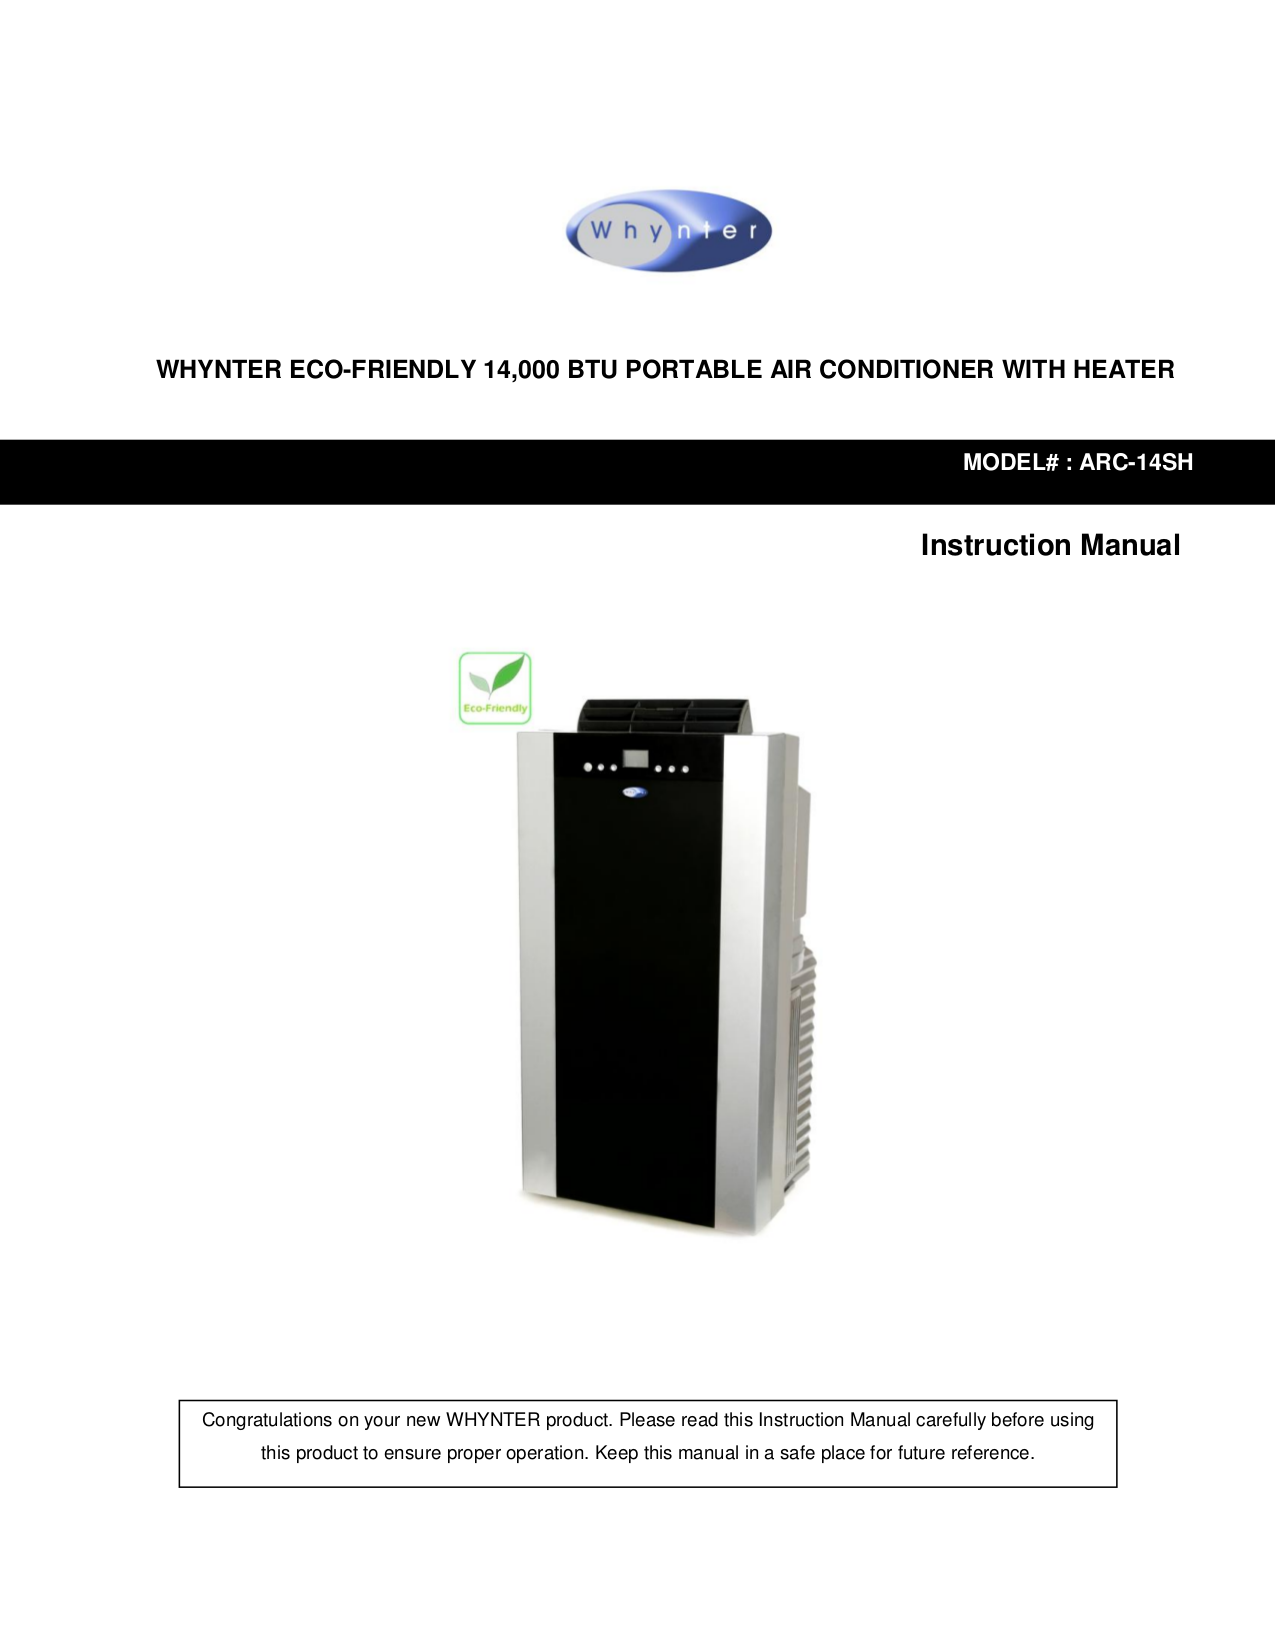 pdf for Whynter Air Conditioner ARC-14SH manual